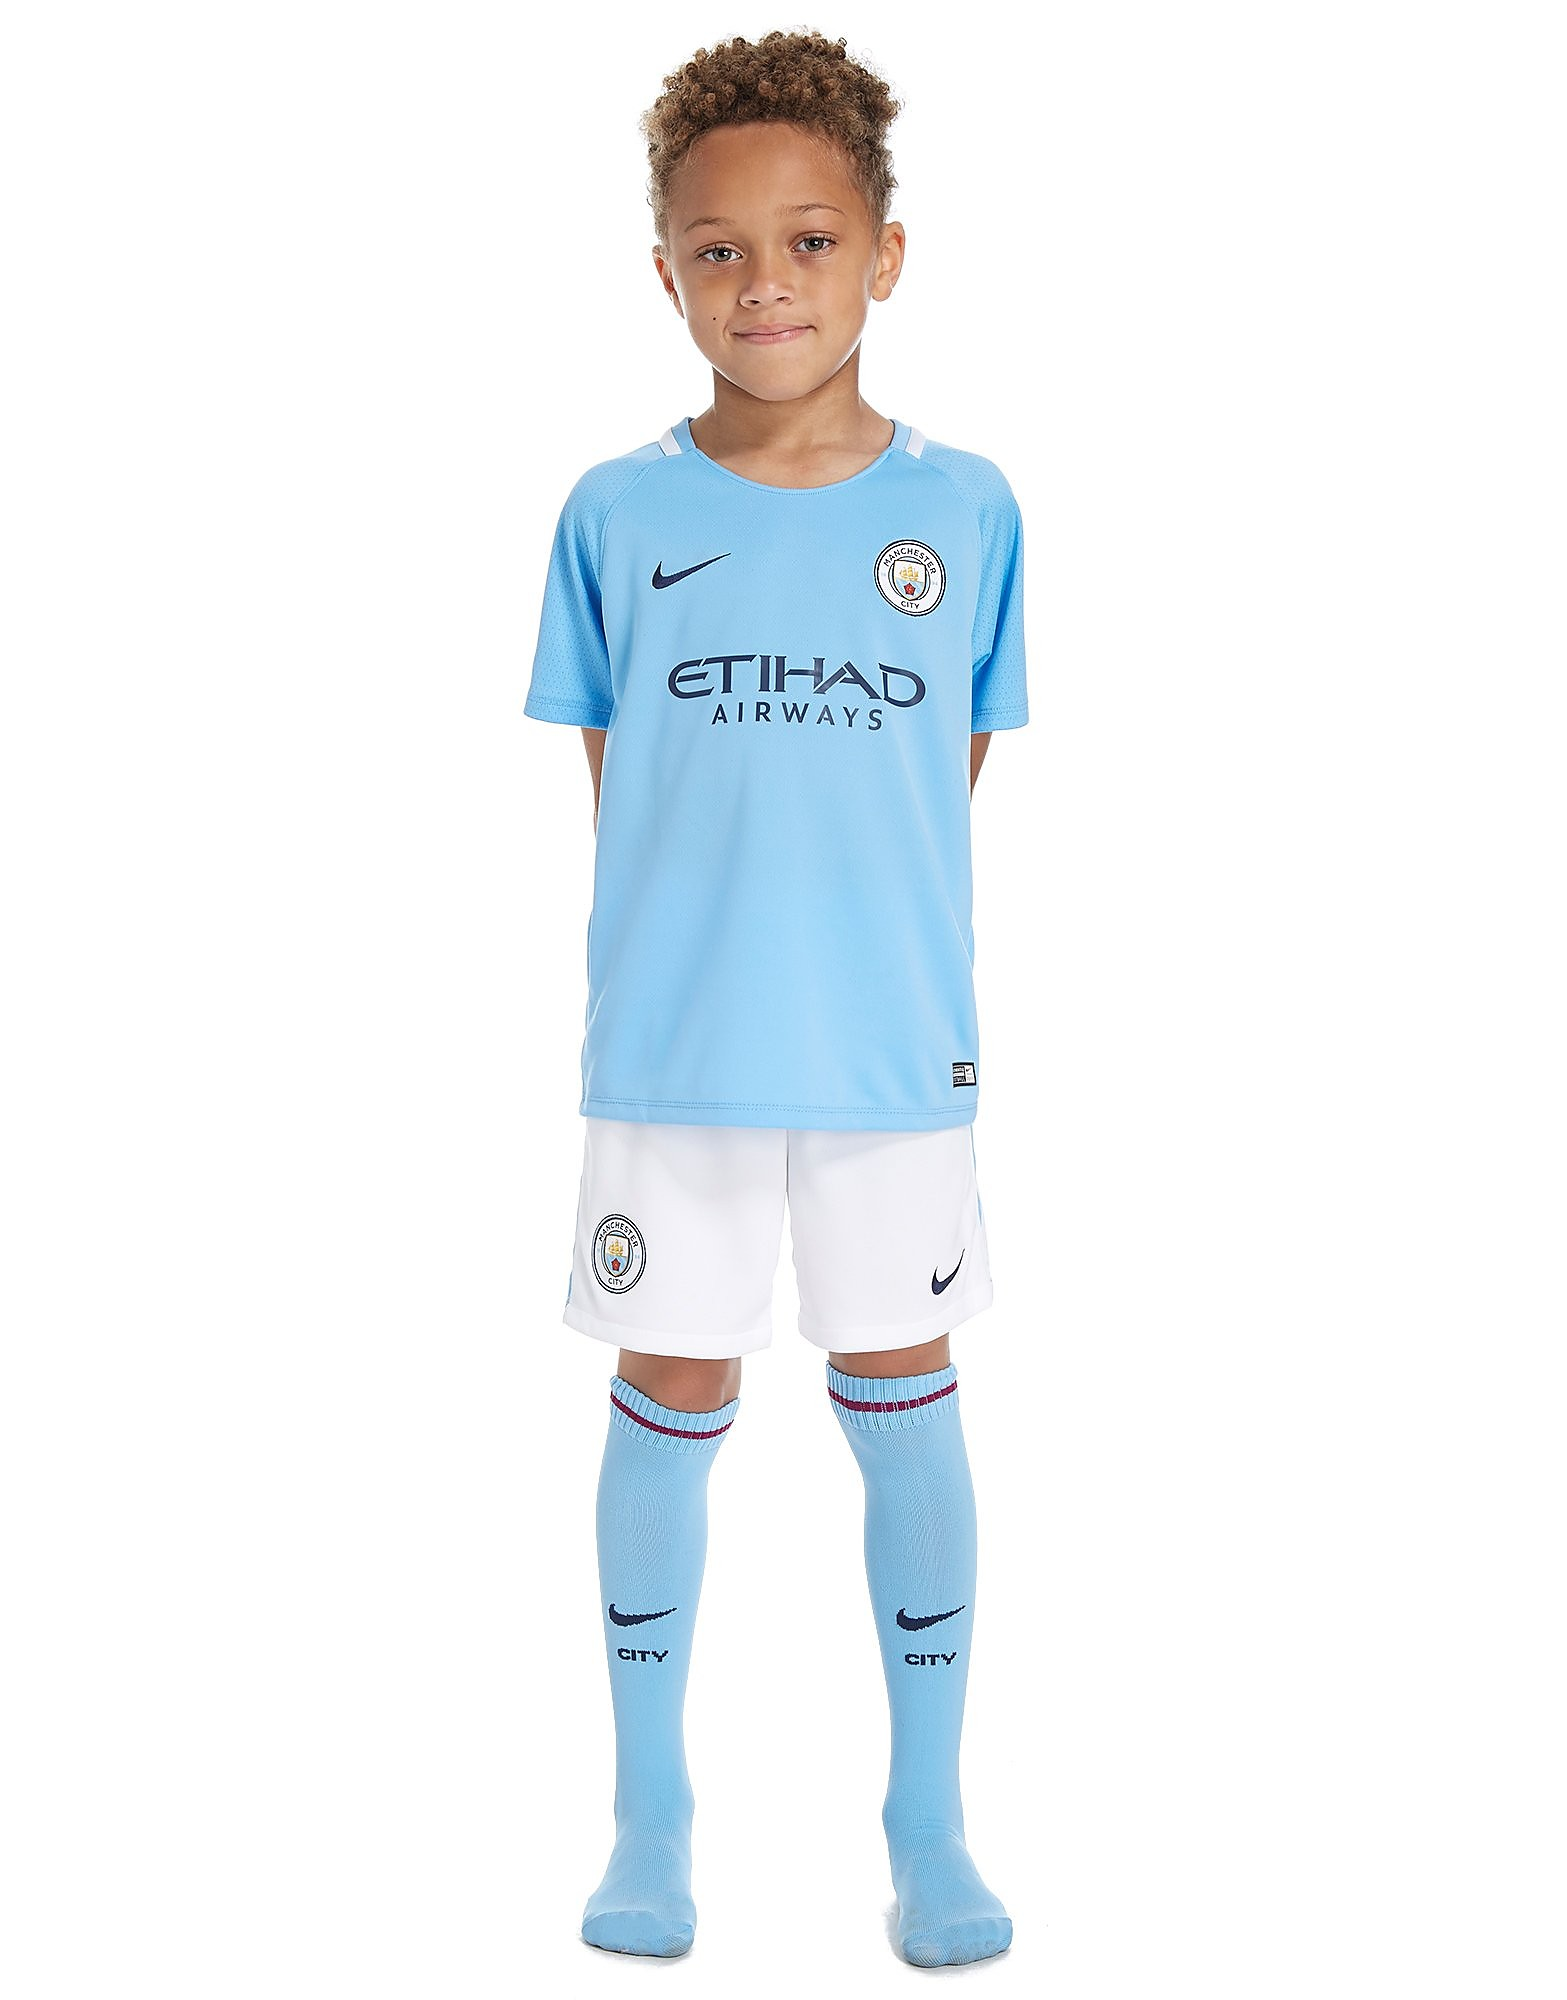 Nike Manchester City 2017/18 Home Kit Children